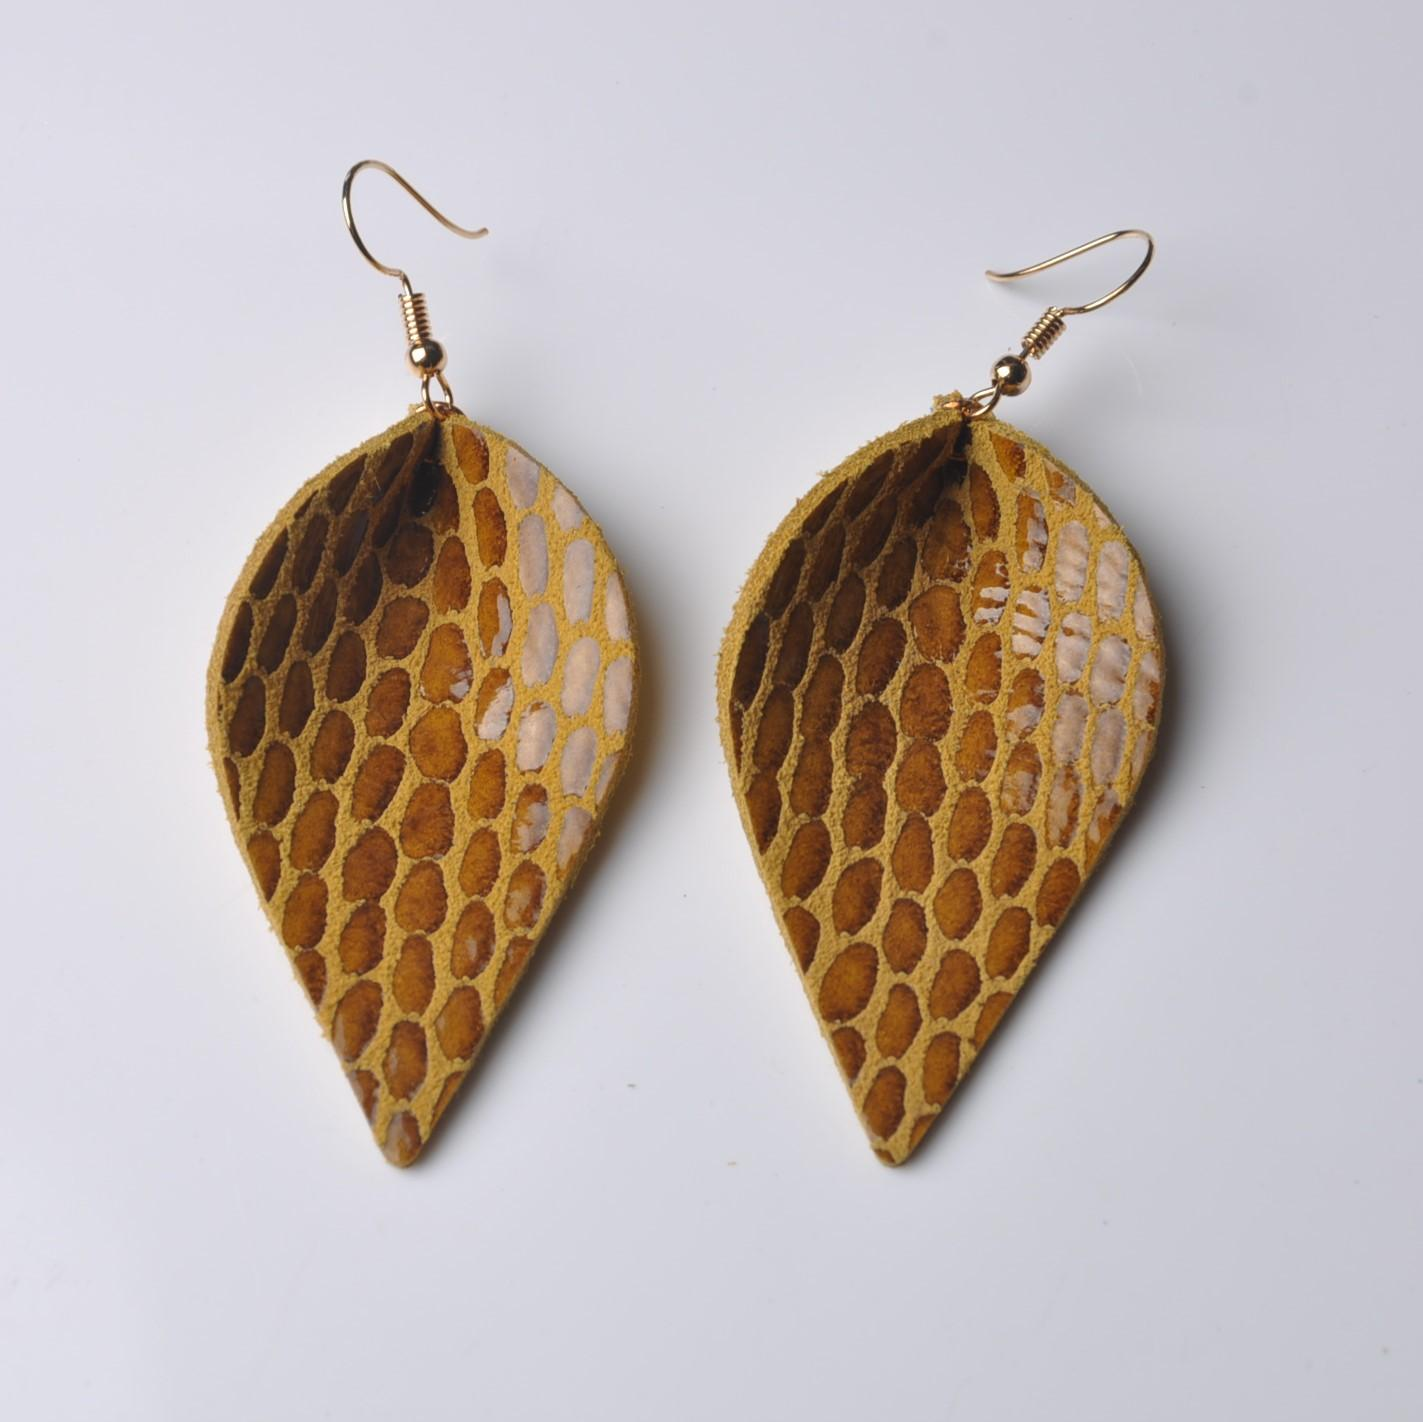 f0d2d1ab8 2019 New Design Fashion Real Leather Leaf Earrings Handmade Jewelry  Serpentine Leather Drop Earrings For Women Bijoux Wholesale From Brands88,  ...